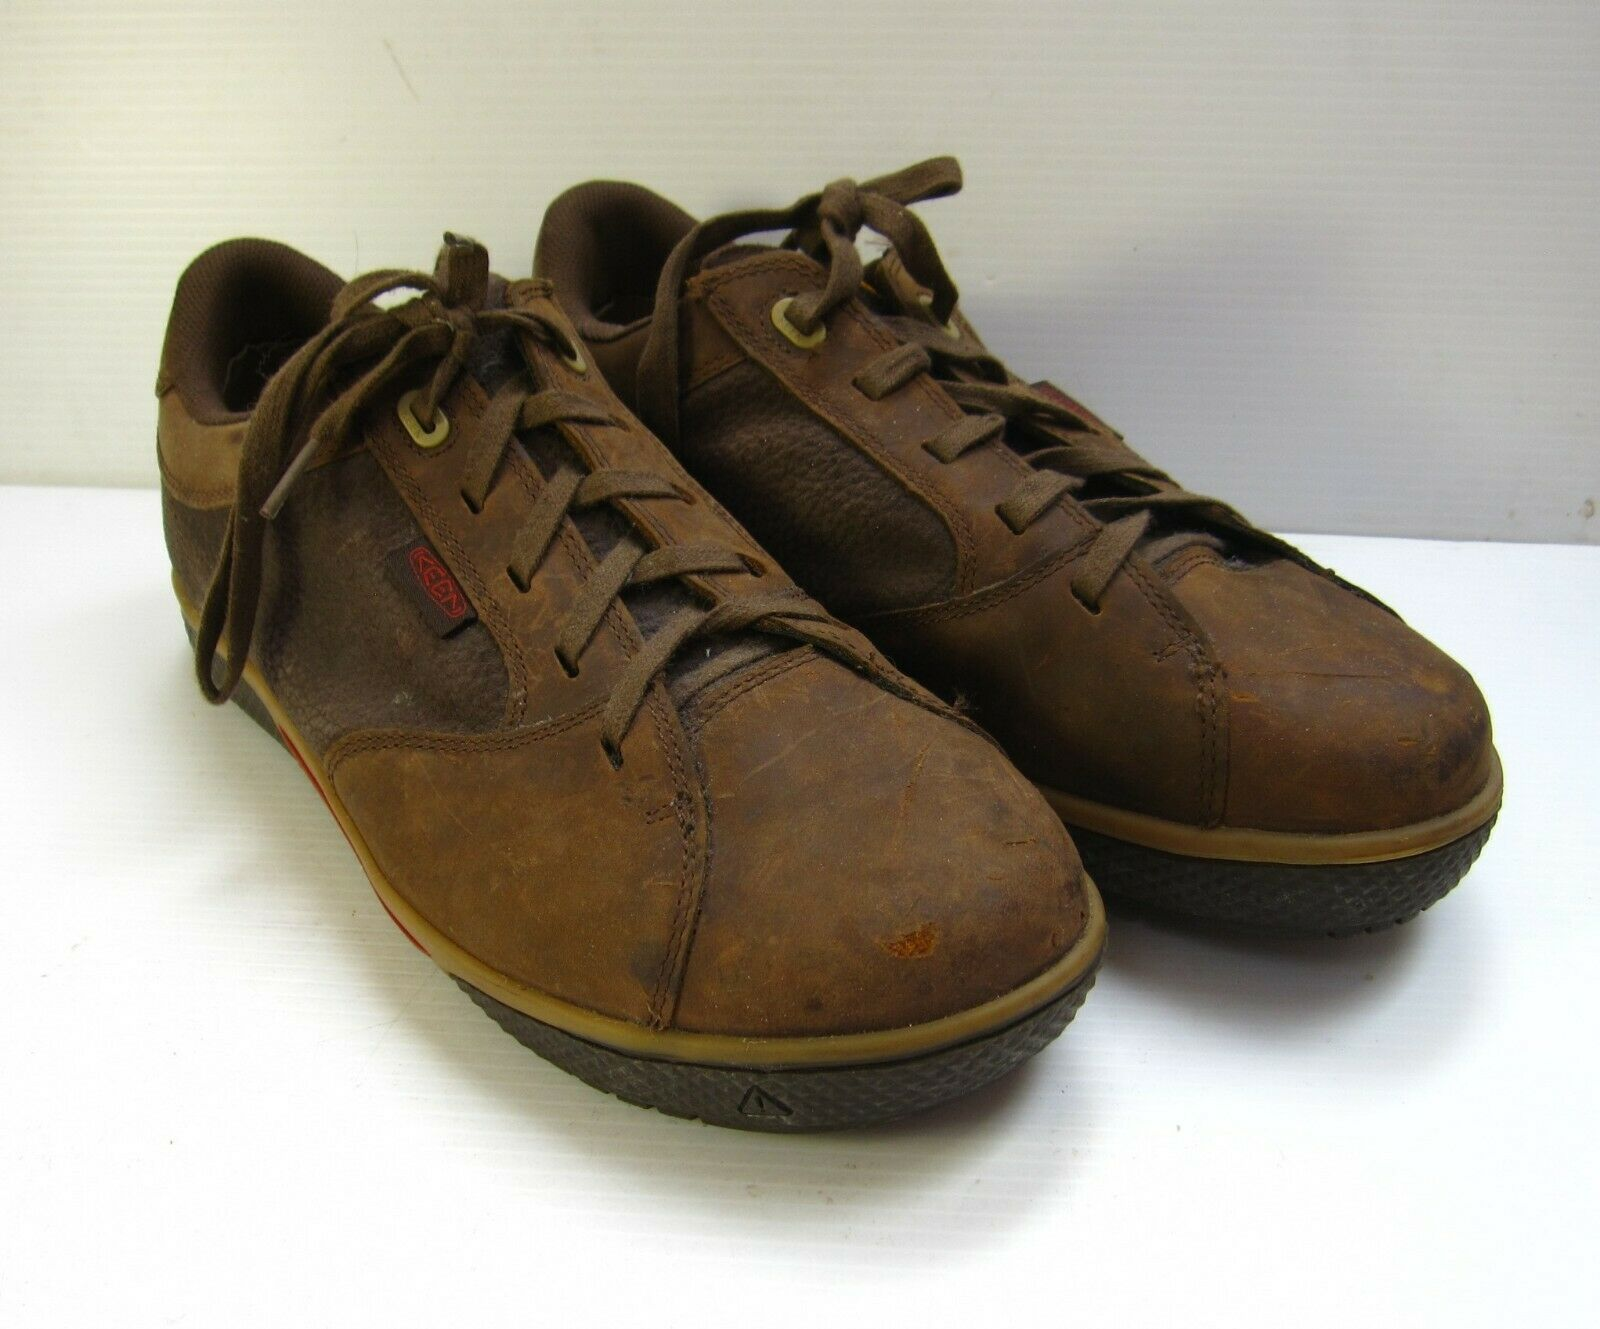 KEEN ESO LOW CUT STEEL TOE SHOES SIZE 10.5 BROWN